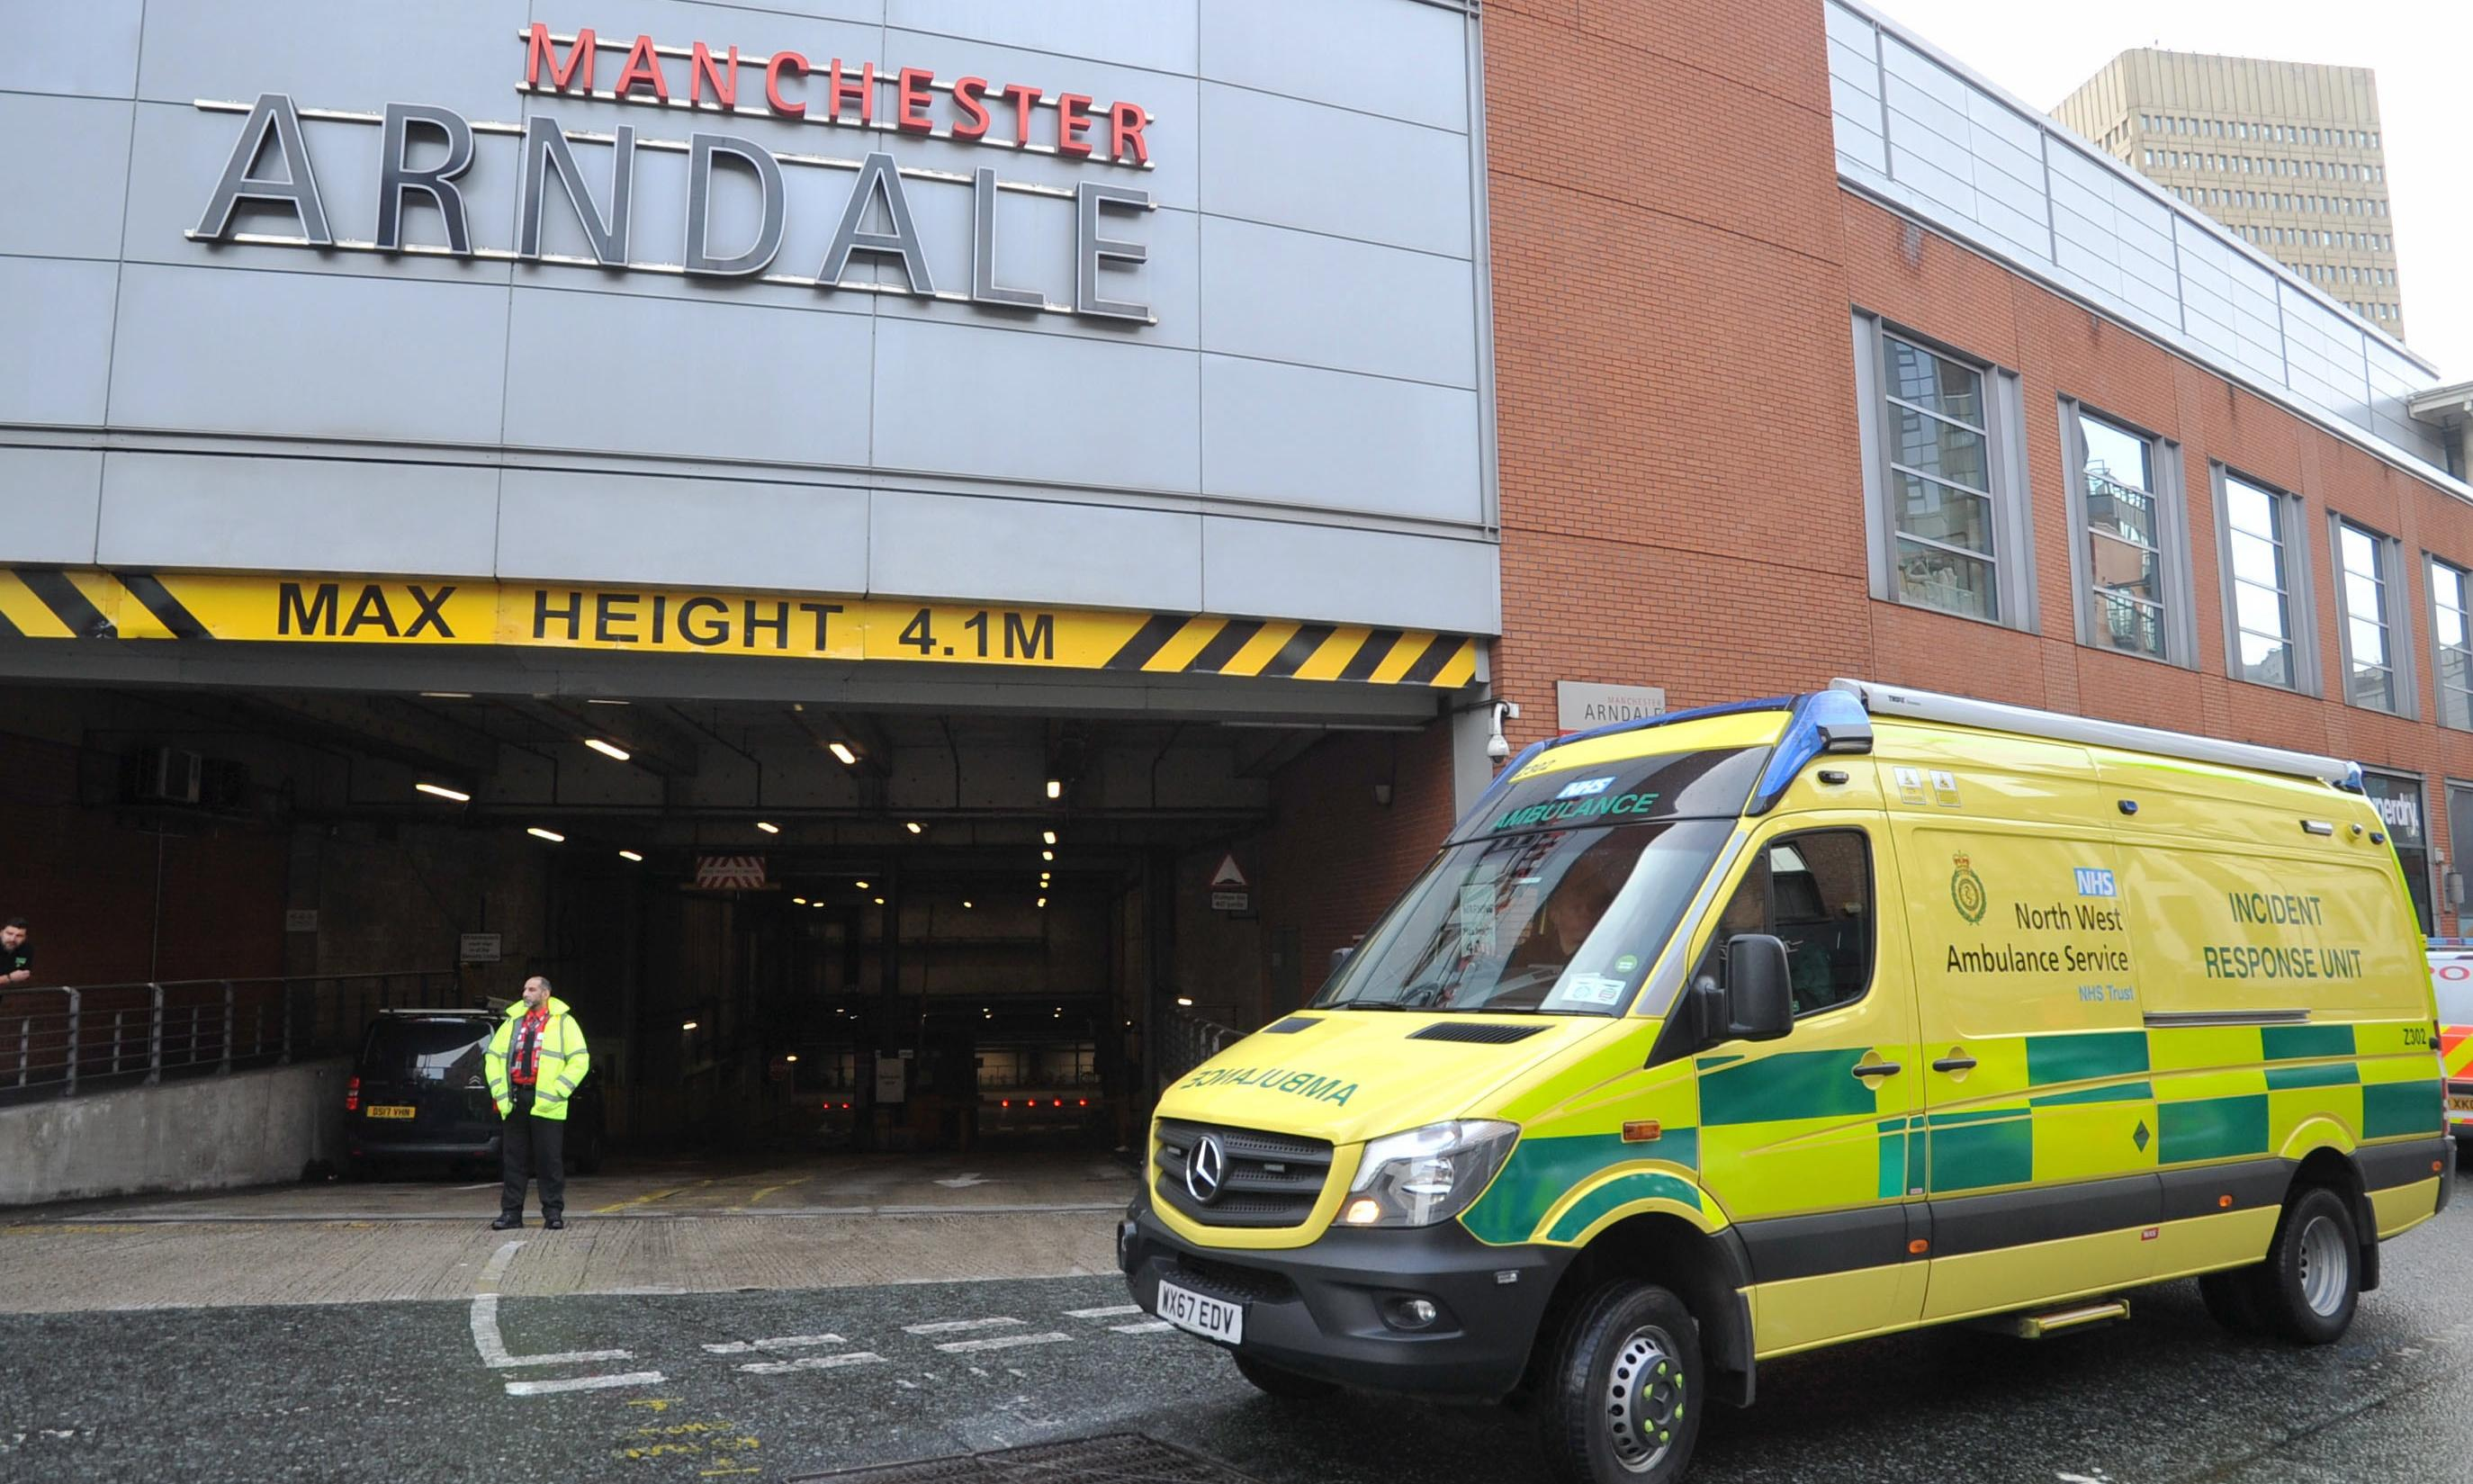 One arrest after reports of knifeman at Arndale centre in Manchester